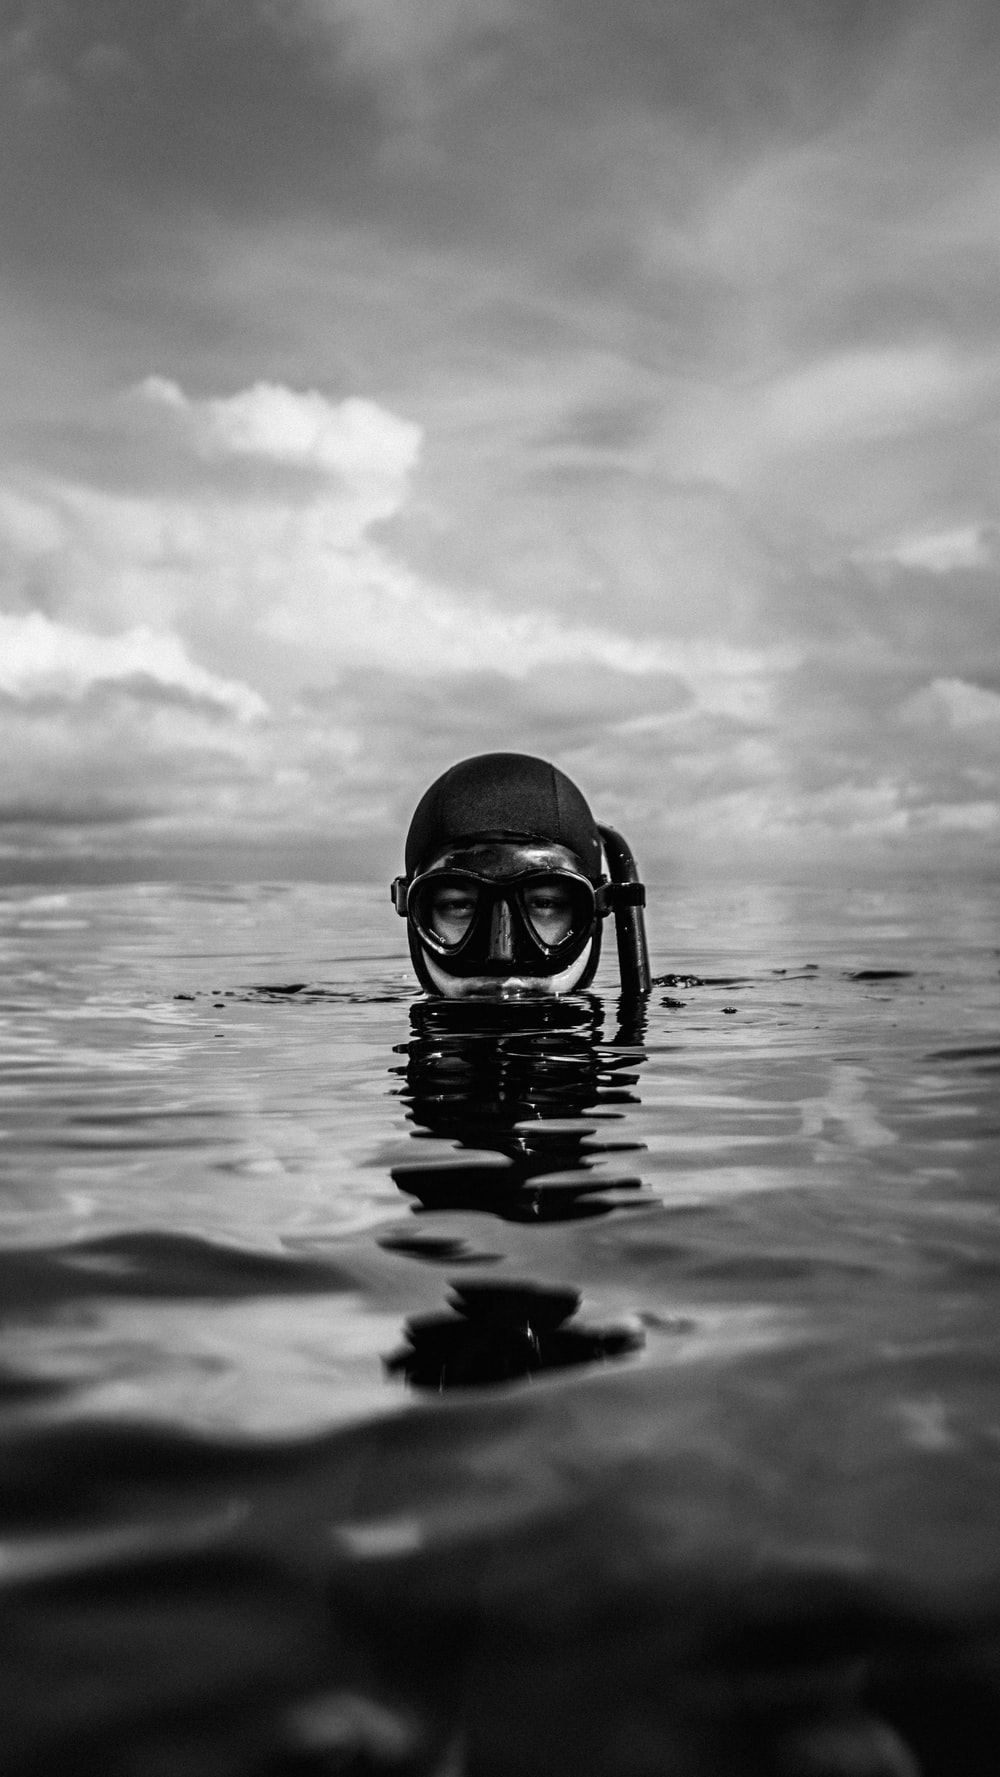 grayscale photo of person wearing goggles on water